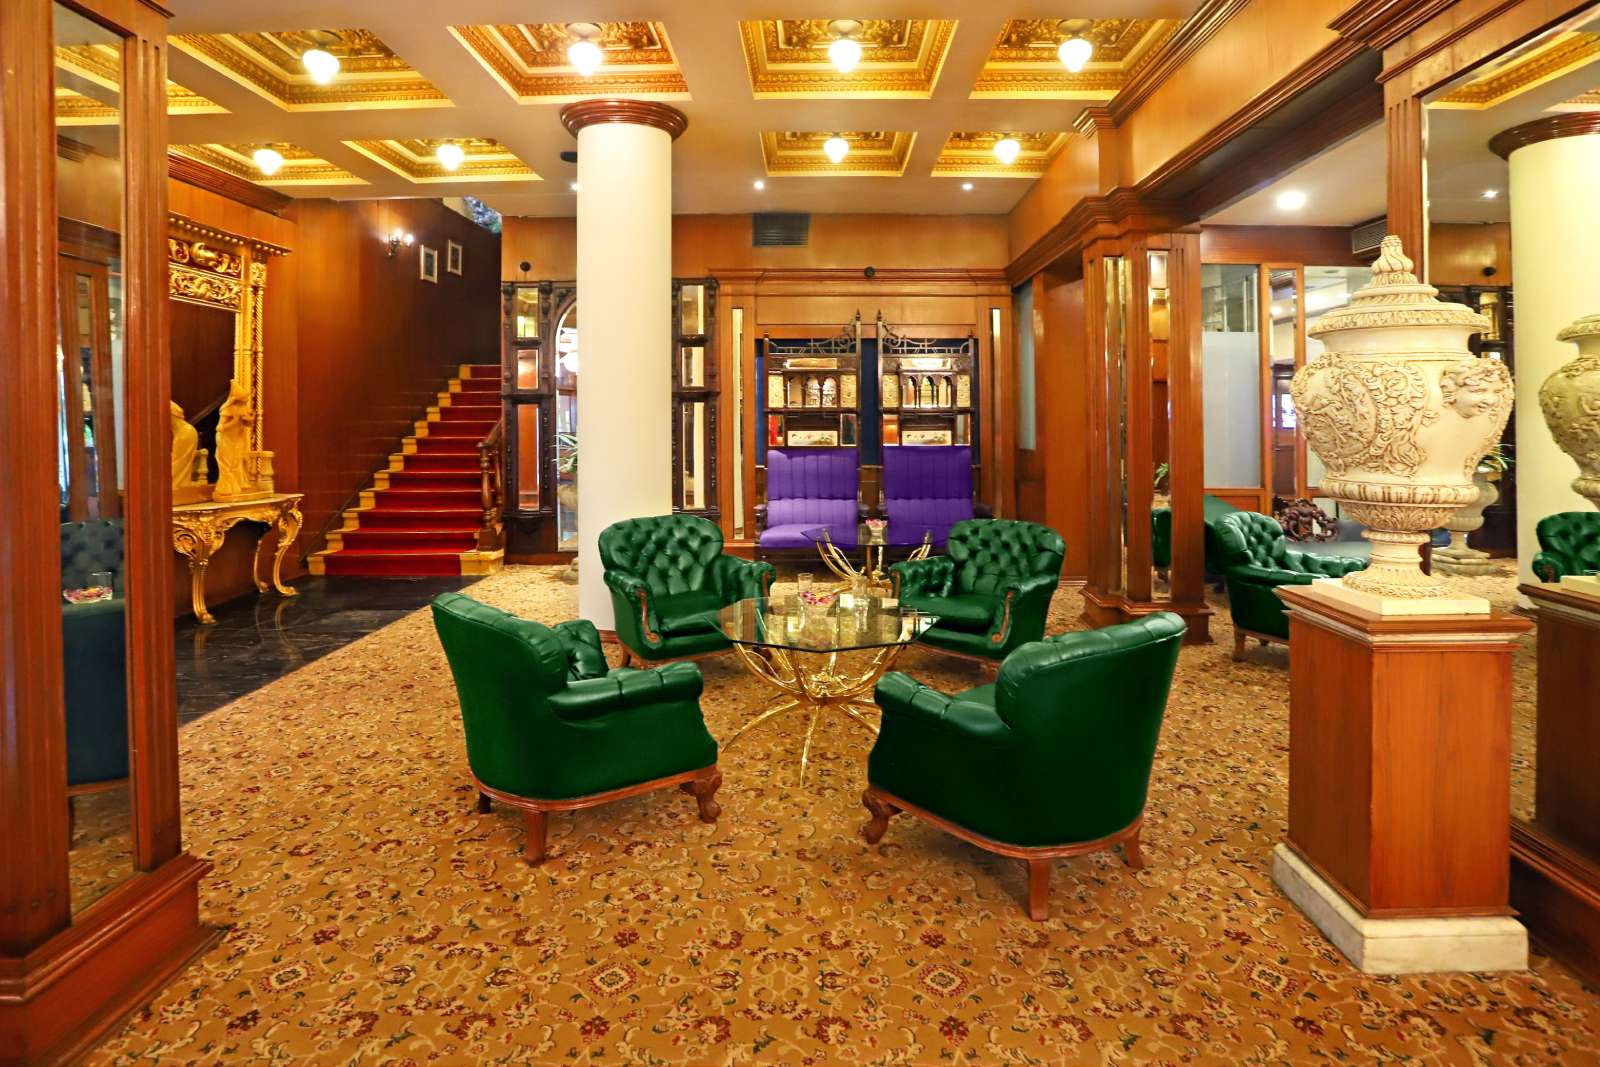 4 Reception - The Ambassador | Heritage Hotels in Mumbai, Aurangabad, Chennai - Contact Hotel